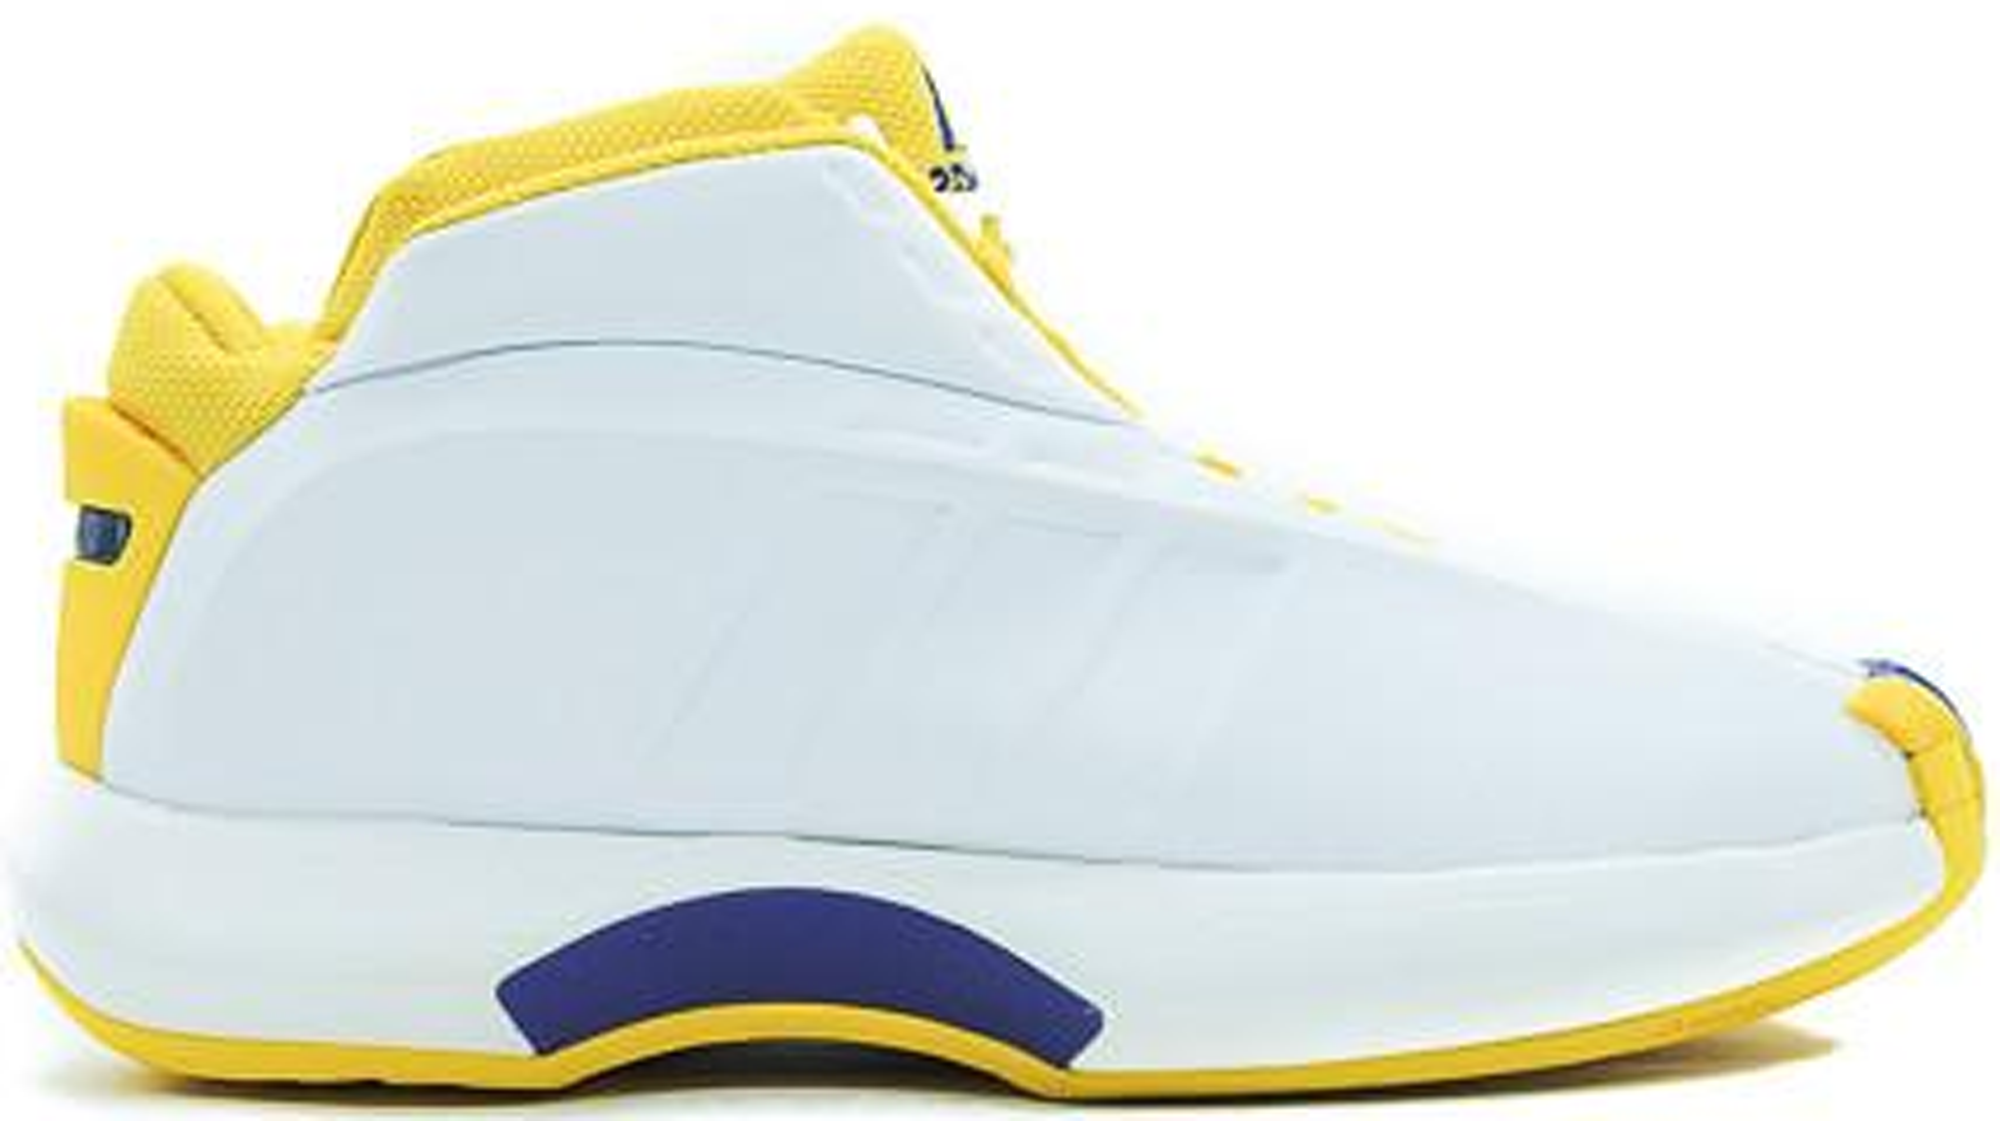 adidas Crazy 1 Lakers Home - 467309